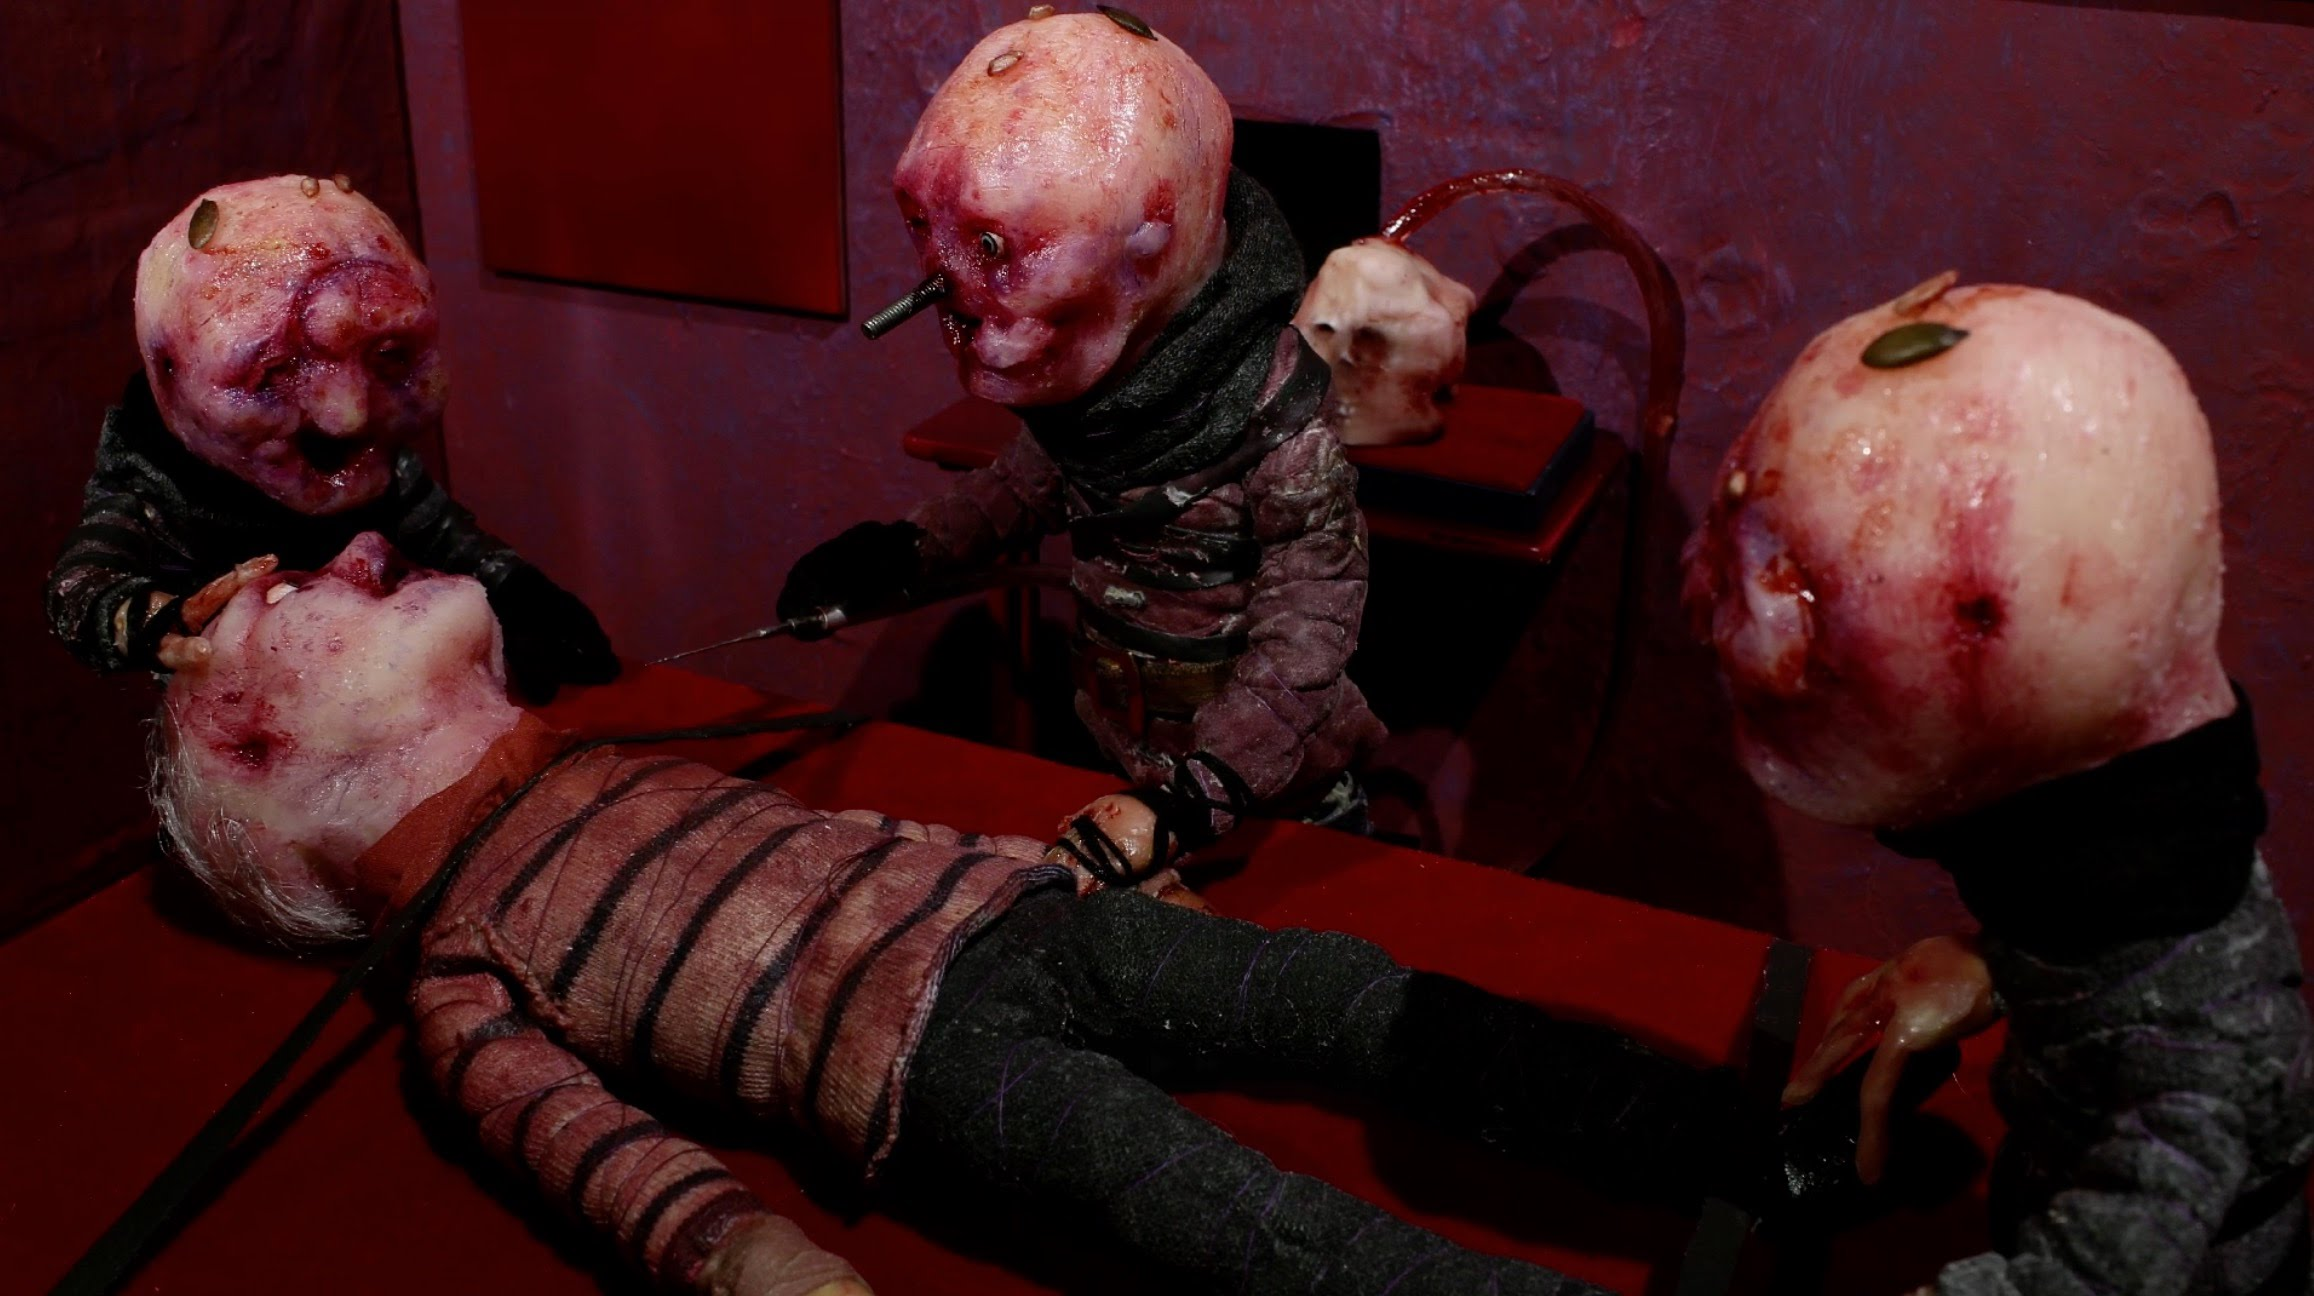 Stop-motion animated grotesquerie from the D is for Deloused segment of ABCs of Death 2 (2014)